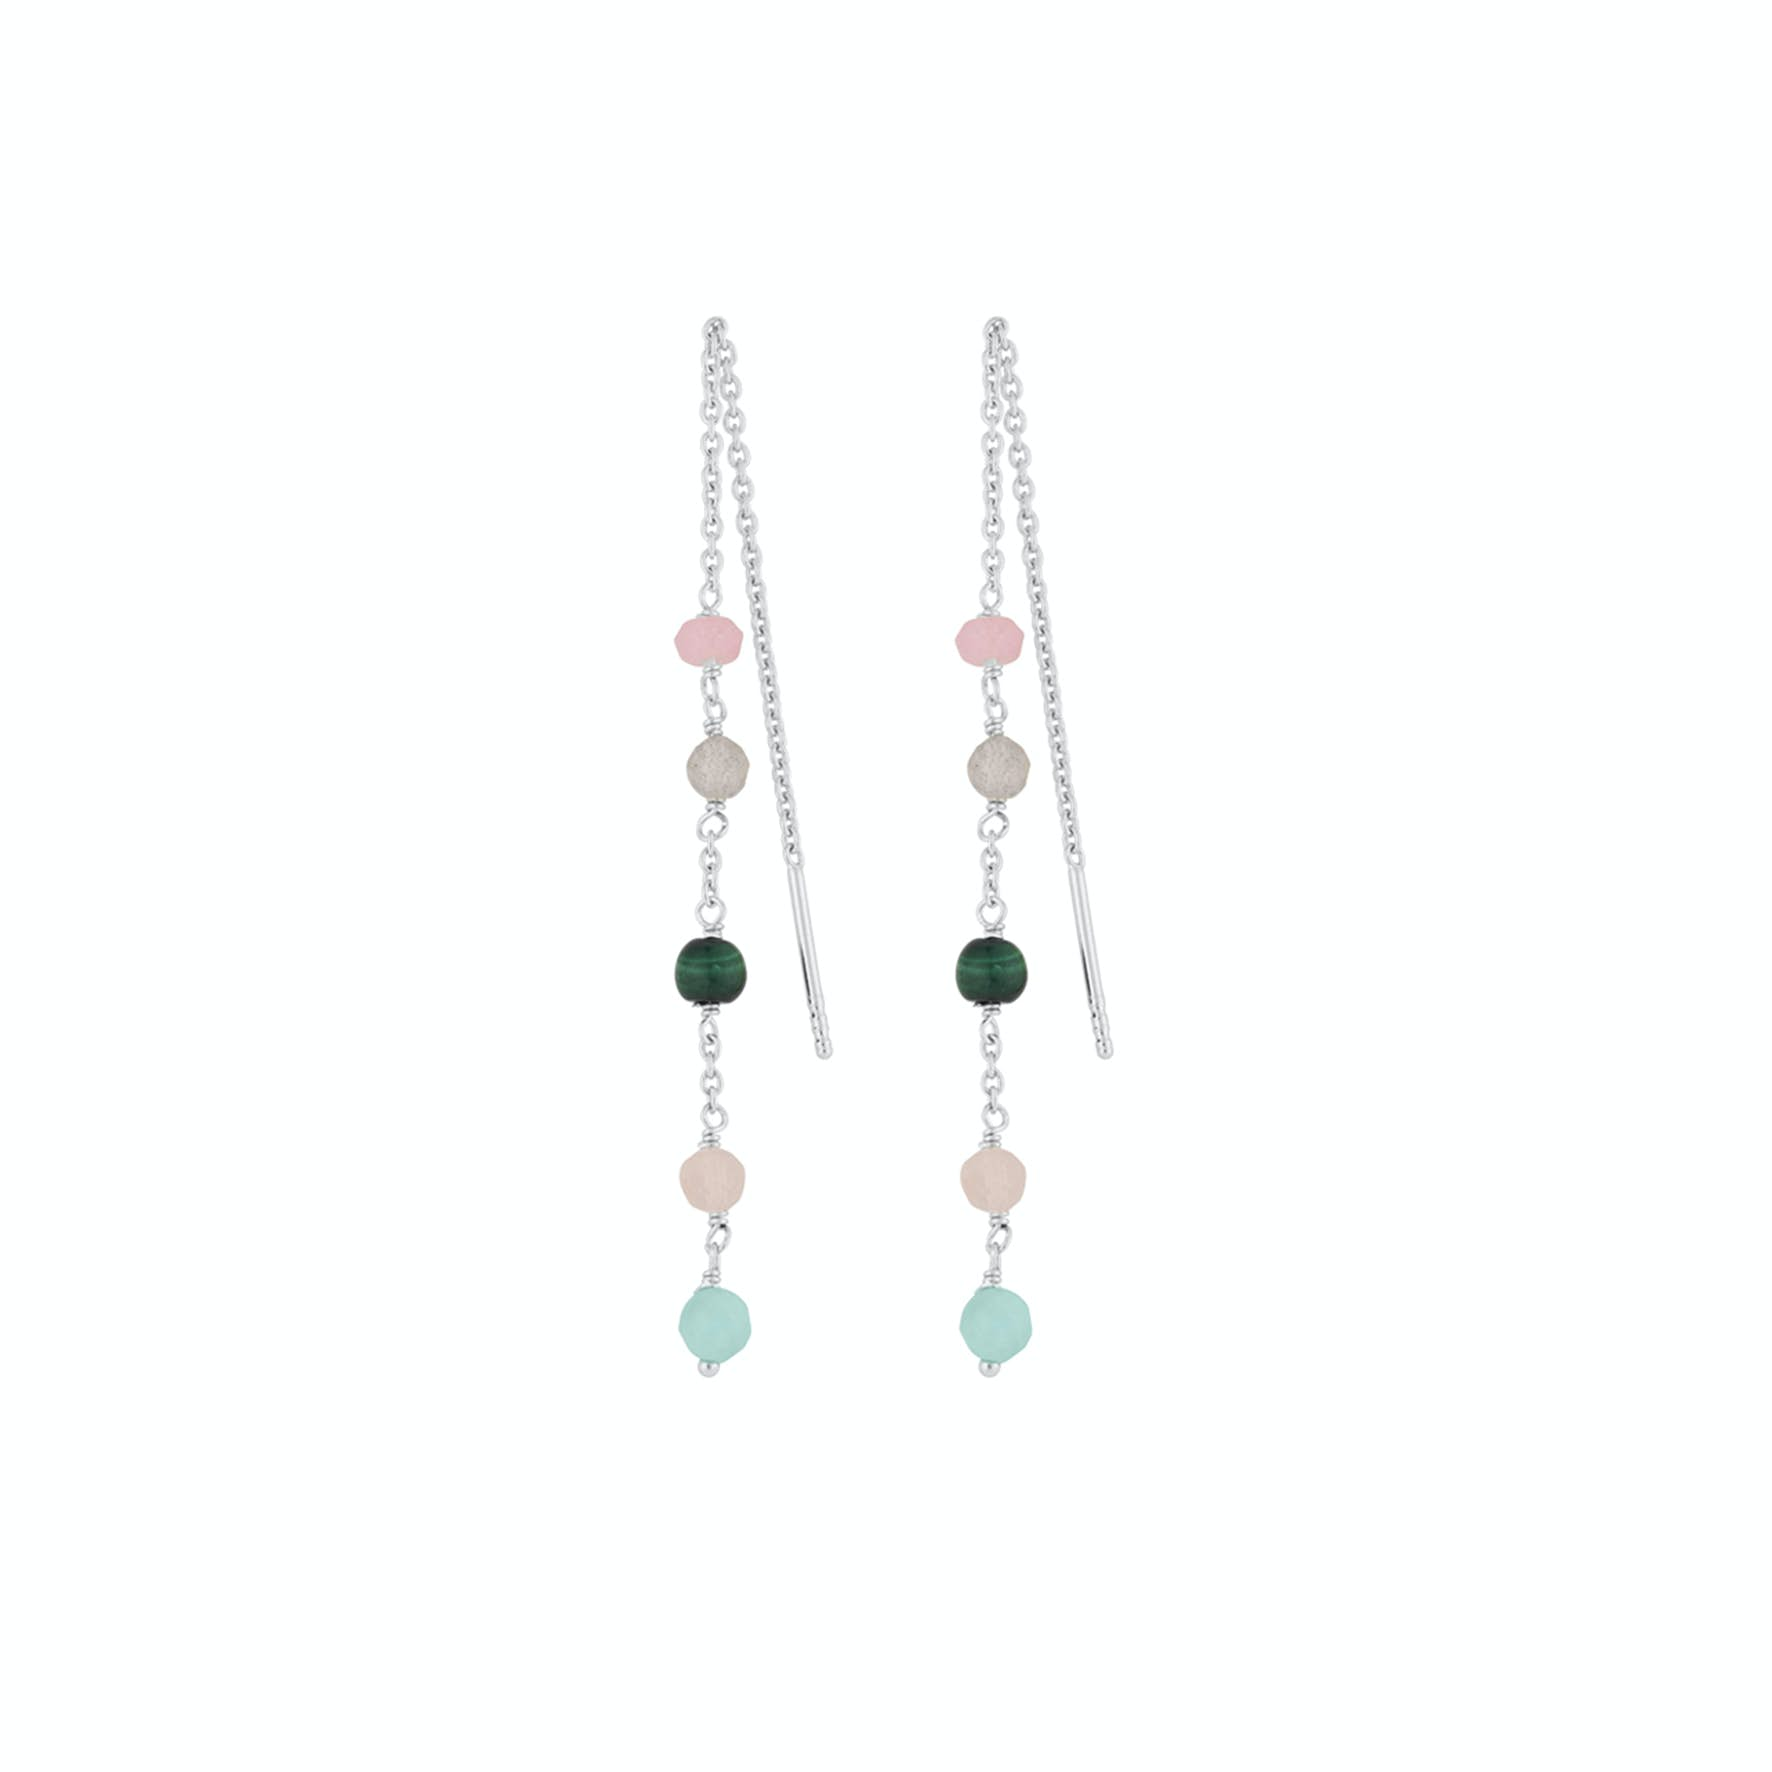 Harmony Earchains from Pernille Corydon in Silver Sterling 925